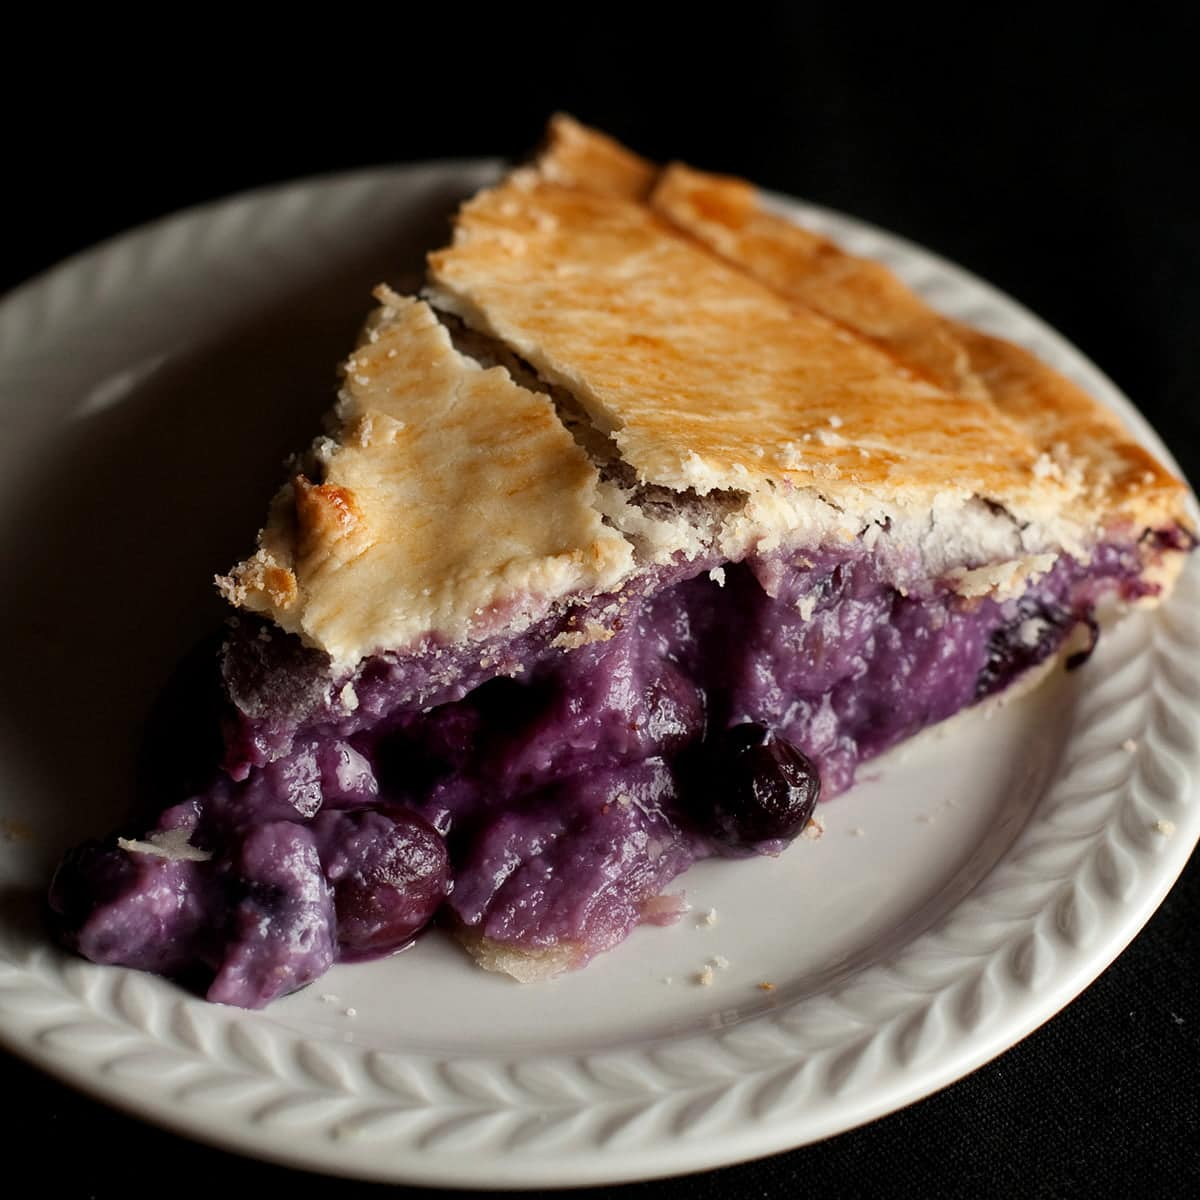 A slice of a creamy looking blueberry pie, on a small white plate.